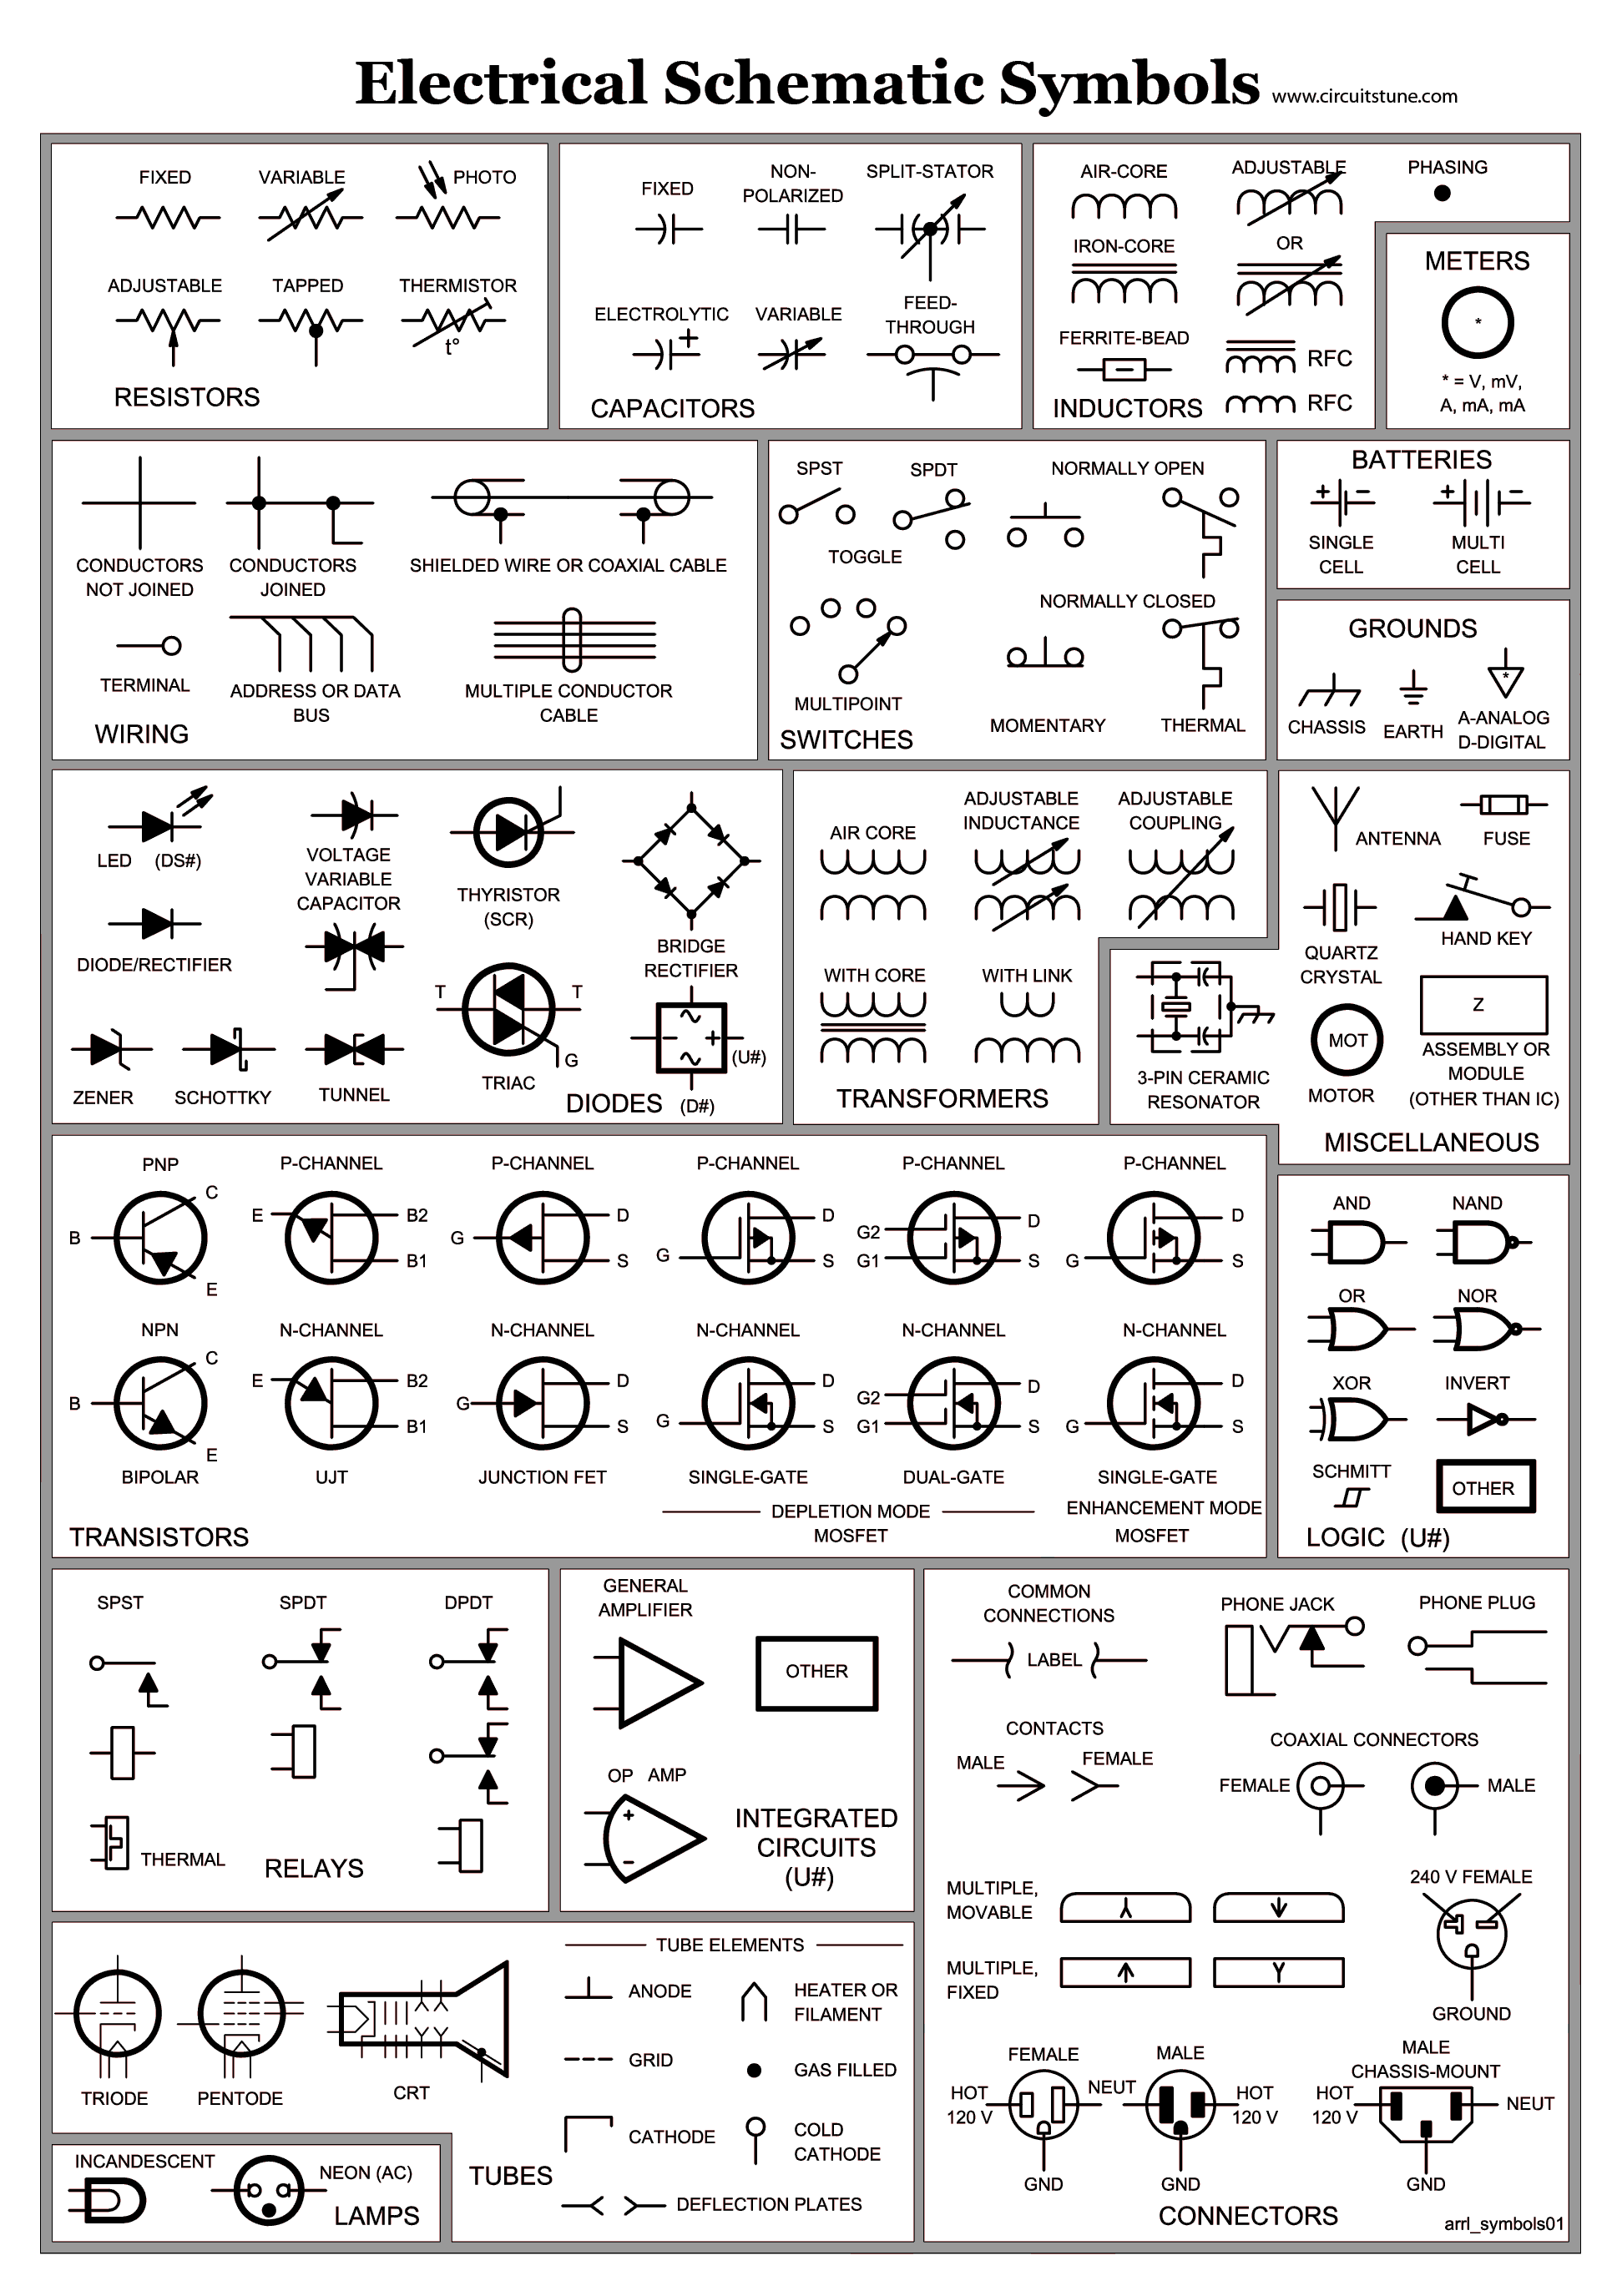 automotive wiring diagram symbols automotive auto wiring diagram electrical schematic symbols wire diagram symbols automotive on automotive wiring diagram symbols